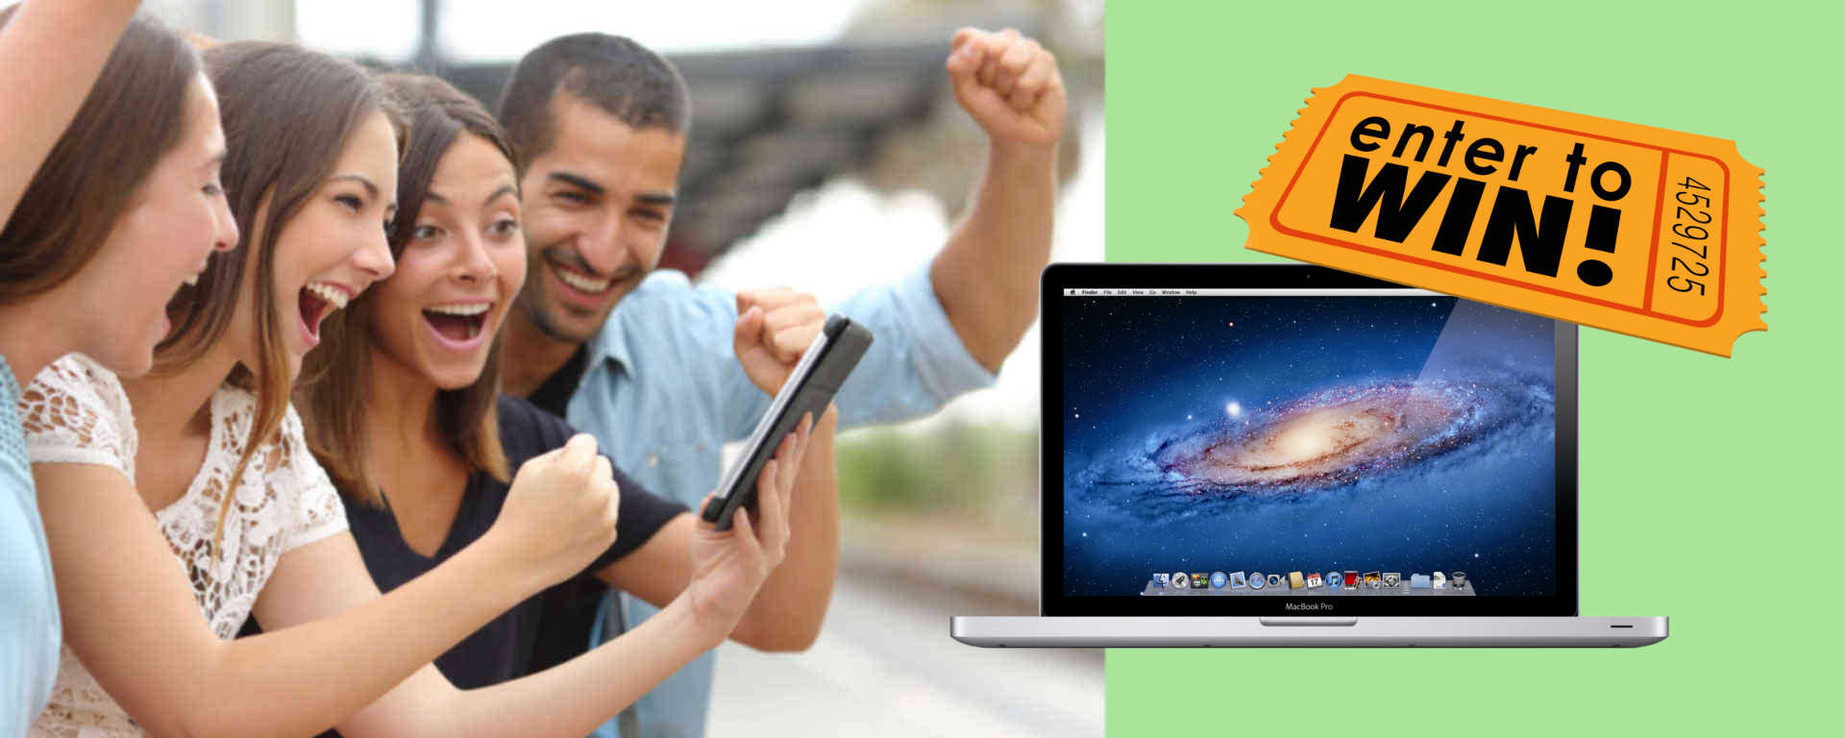 GainSaver March 2015 Sweepstakes - Win a $700 Macbook Pro